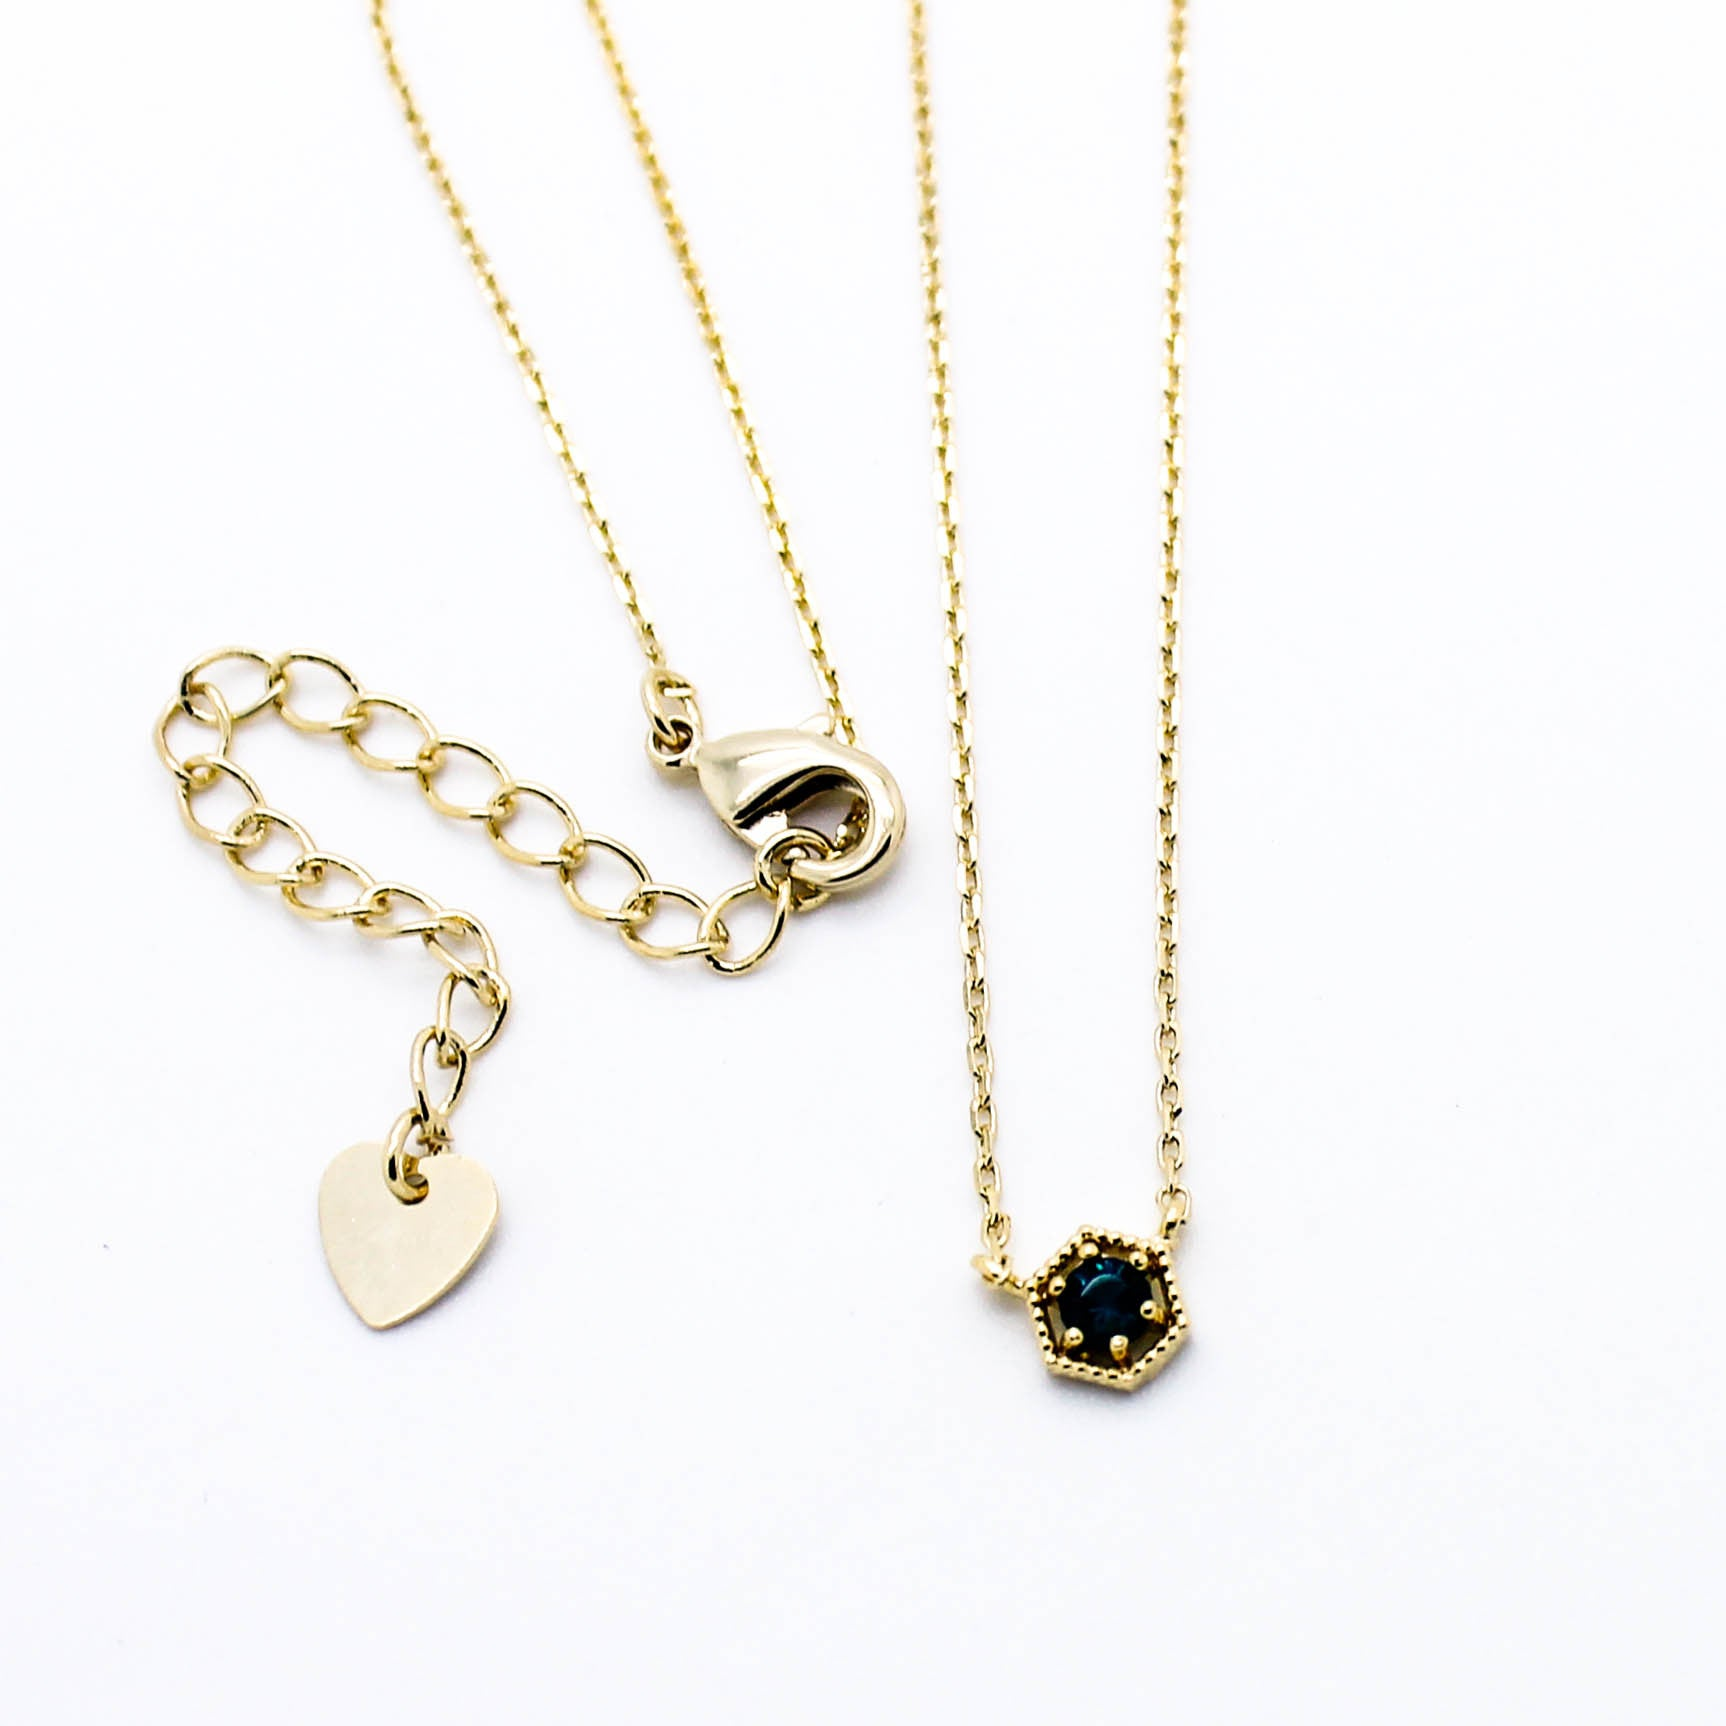 products august gems necklace jan heartbeat gold nichole zomi birthstone